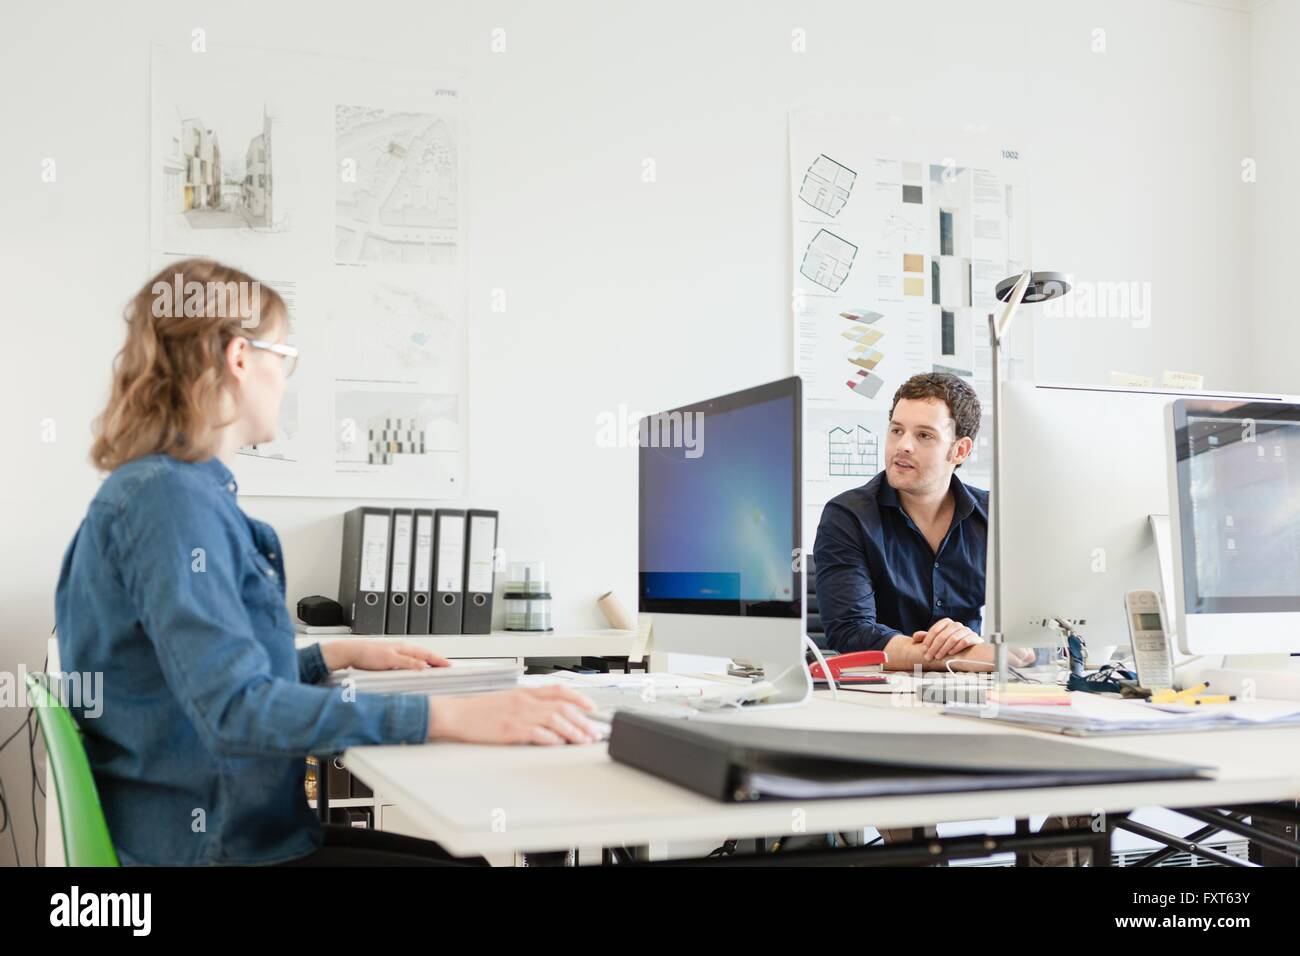 Colleagues sitting at desk in office using computers talking - Stock Image